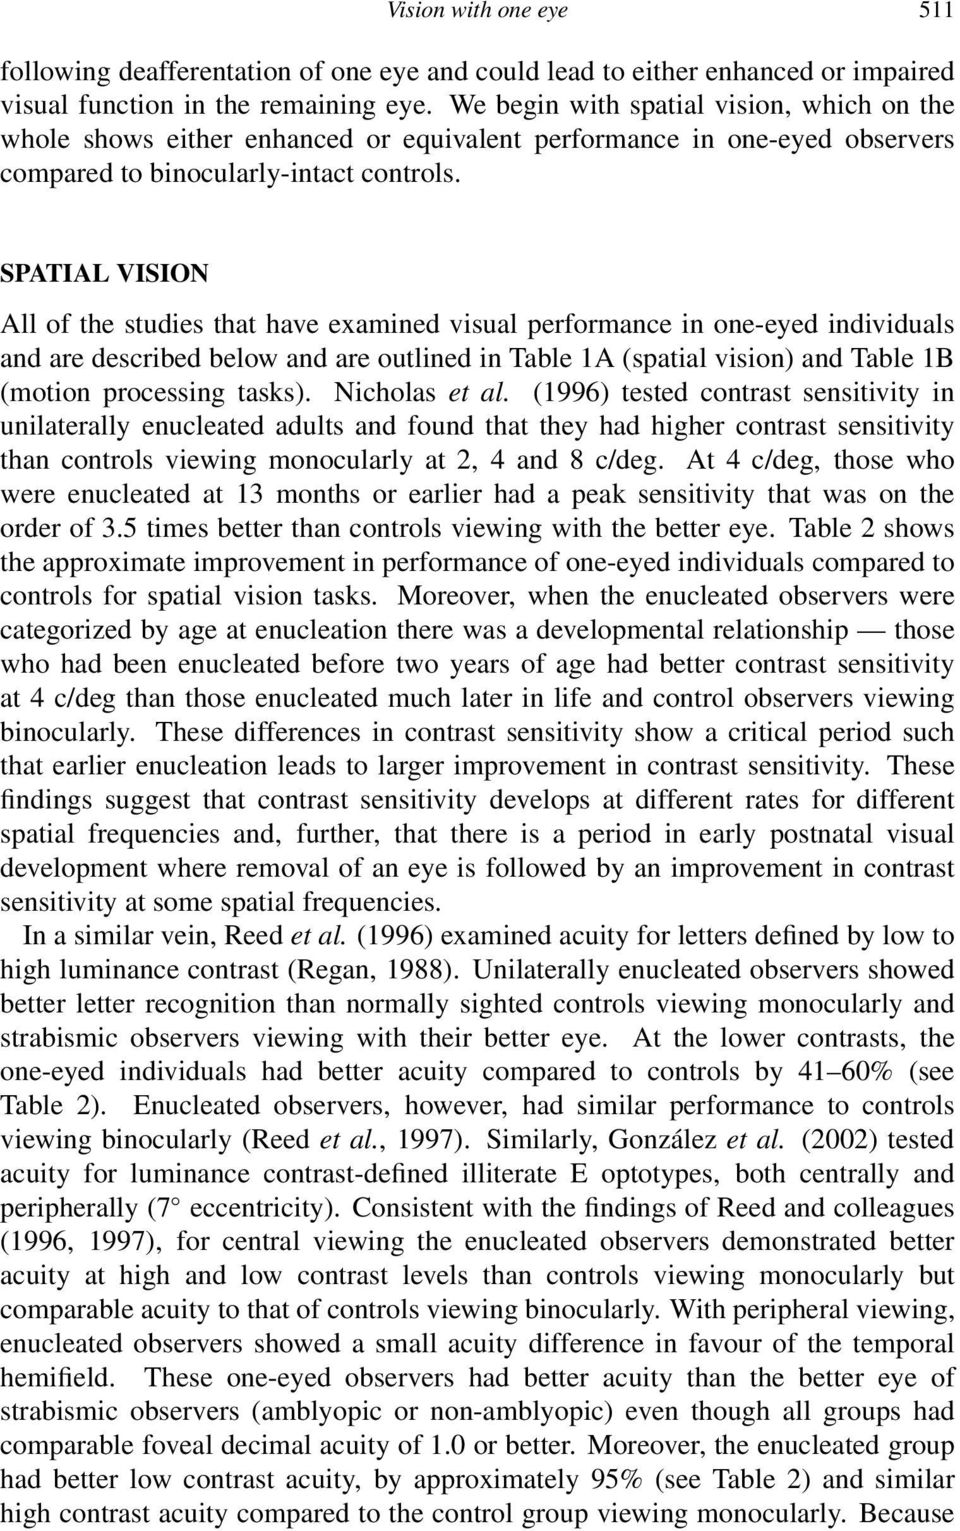 SPATIAL VISION All of the studies that have examined visual performance in one-eyed individuals and are described below and are outlined in Table 1A (spatial vision) and Table 1B (motion processing